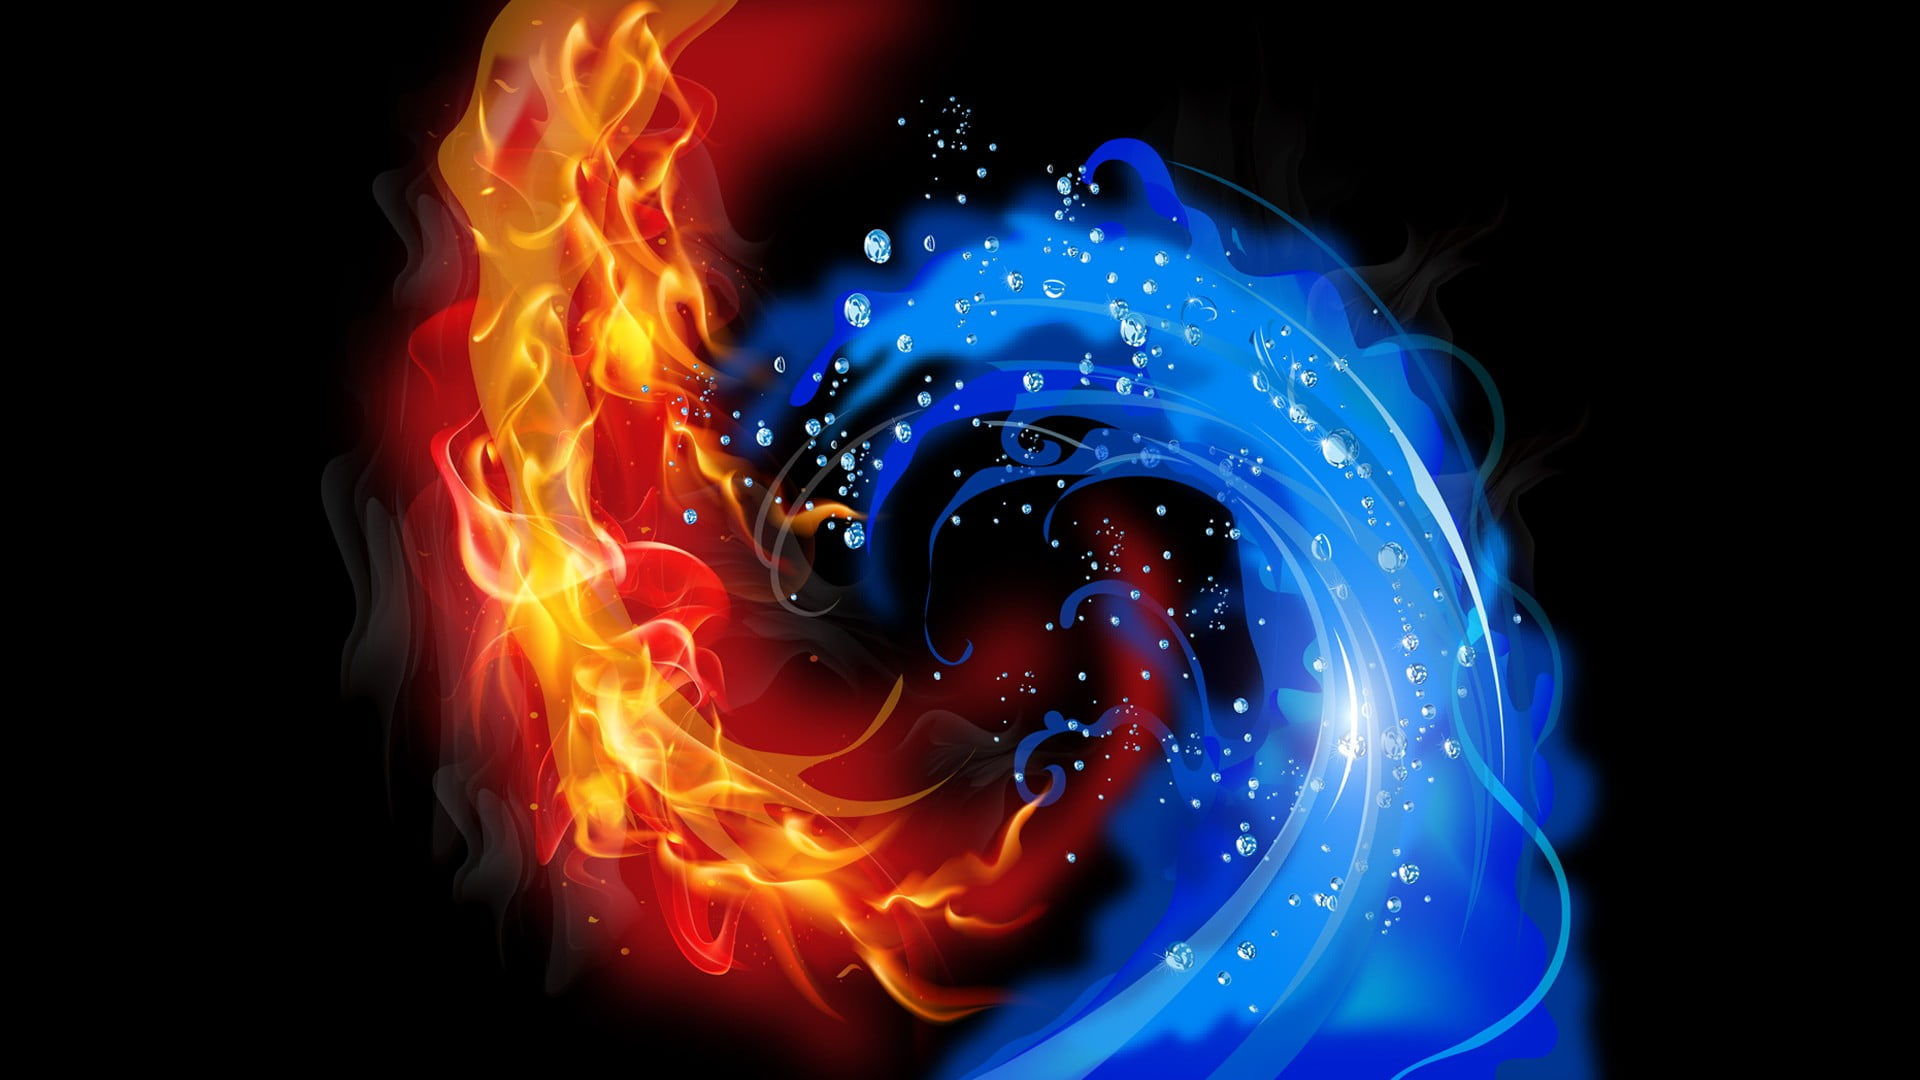 Fire And Ice Wallpaper Abstract Black Background Fire Water